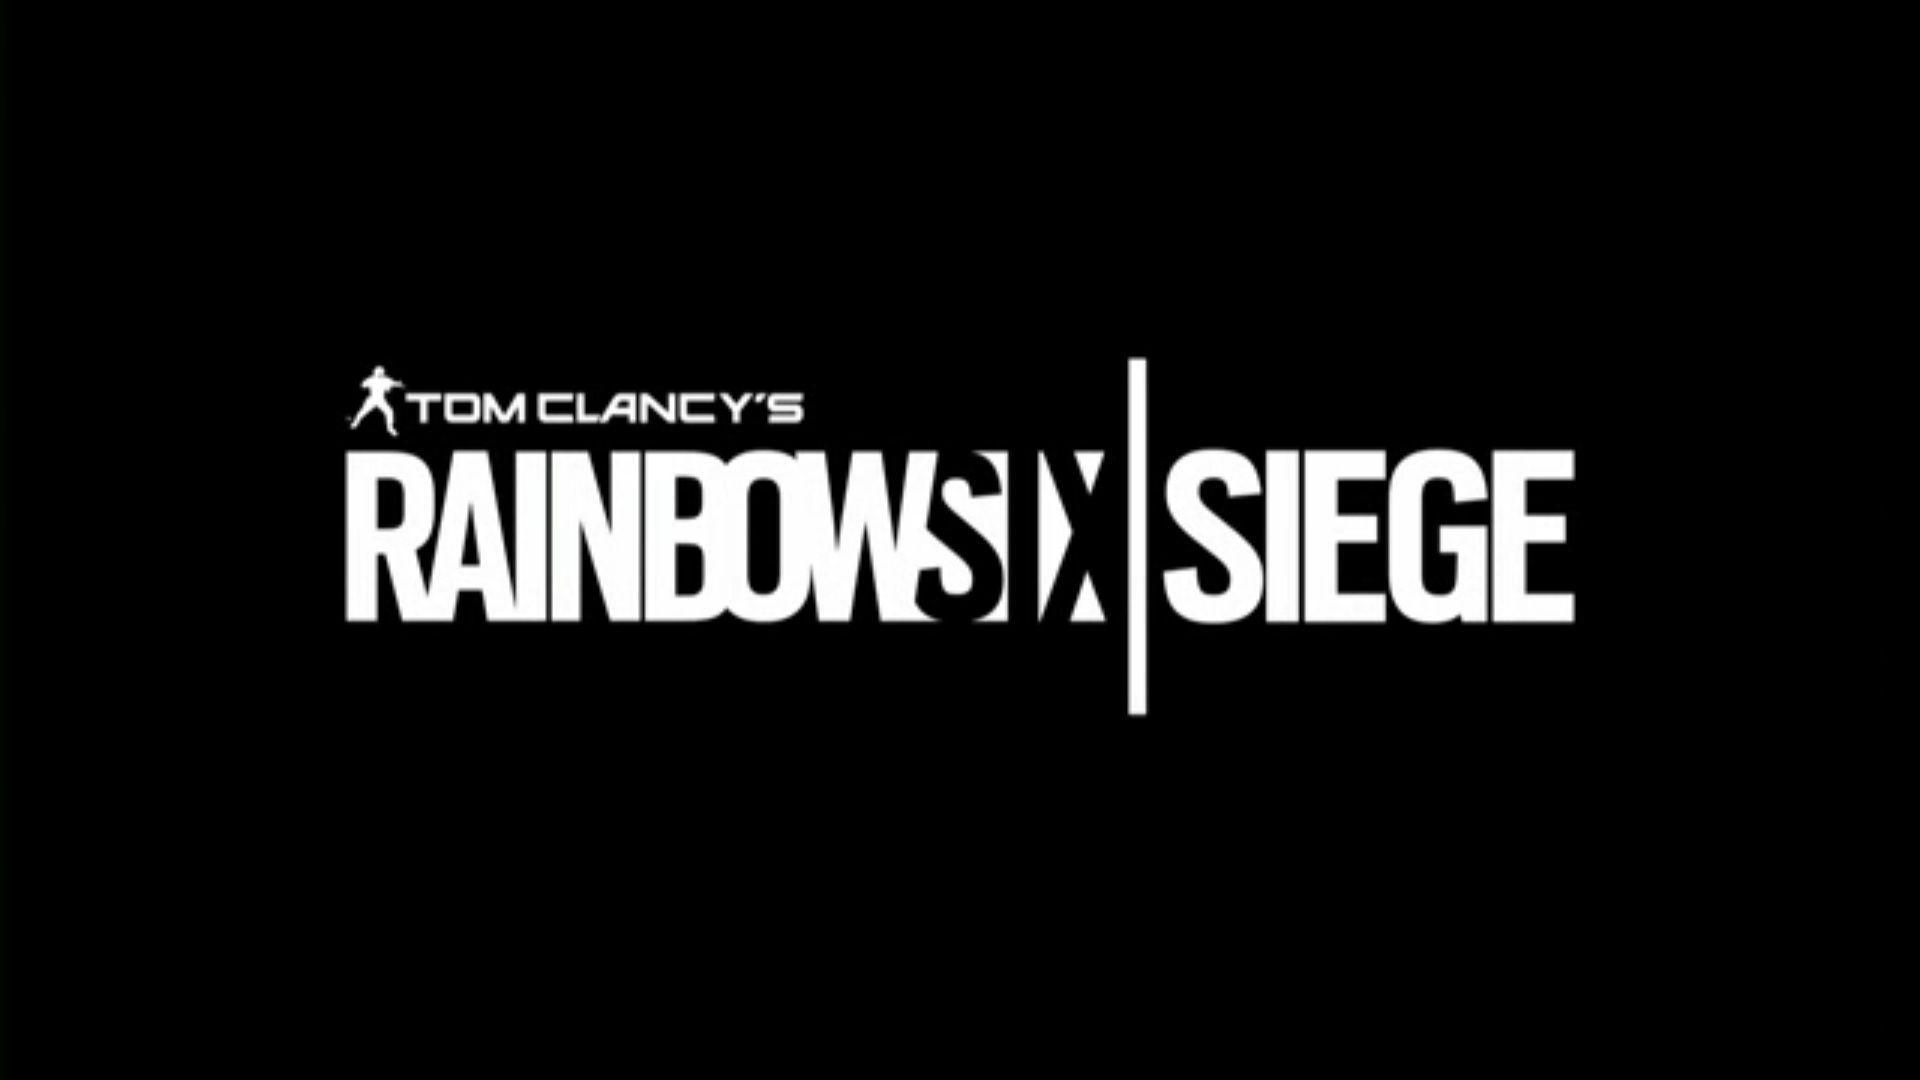 Tom Clancys Rainbow Six Siege wallpaper – wallpaper free download